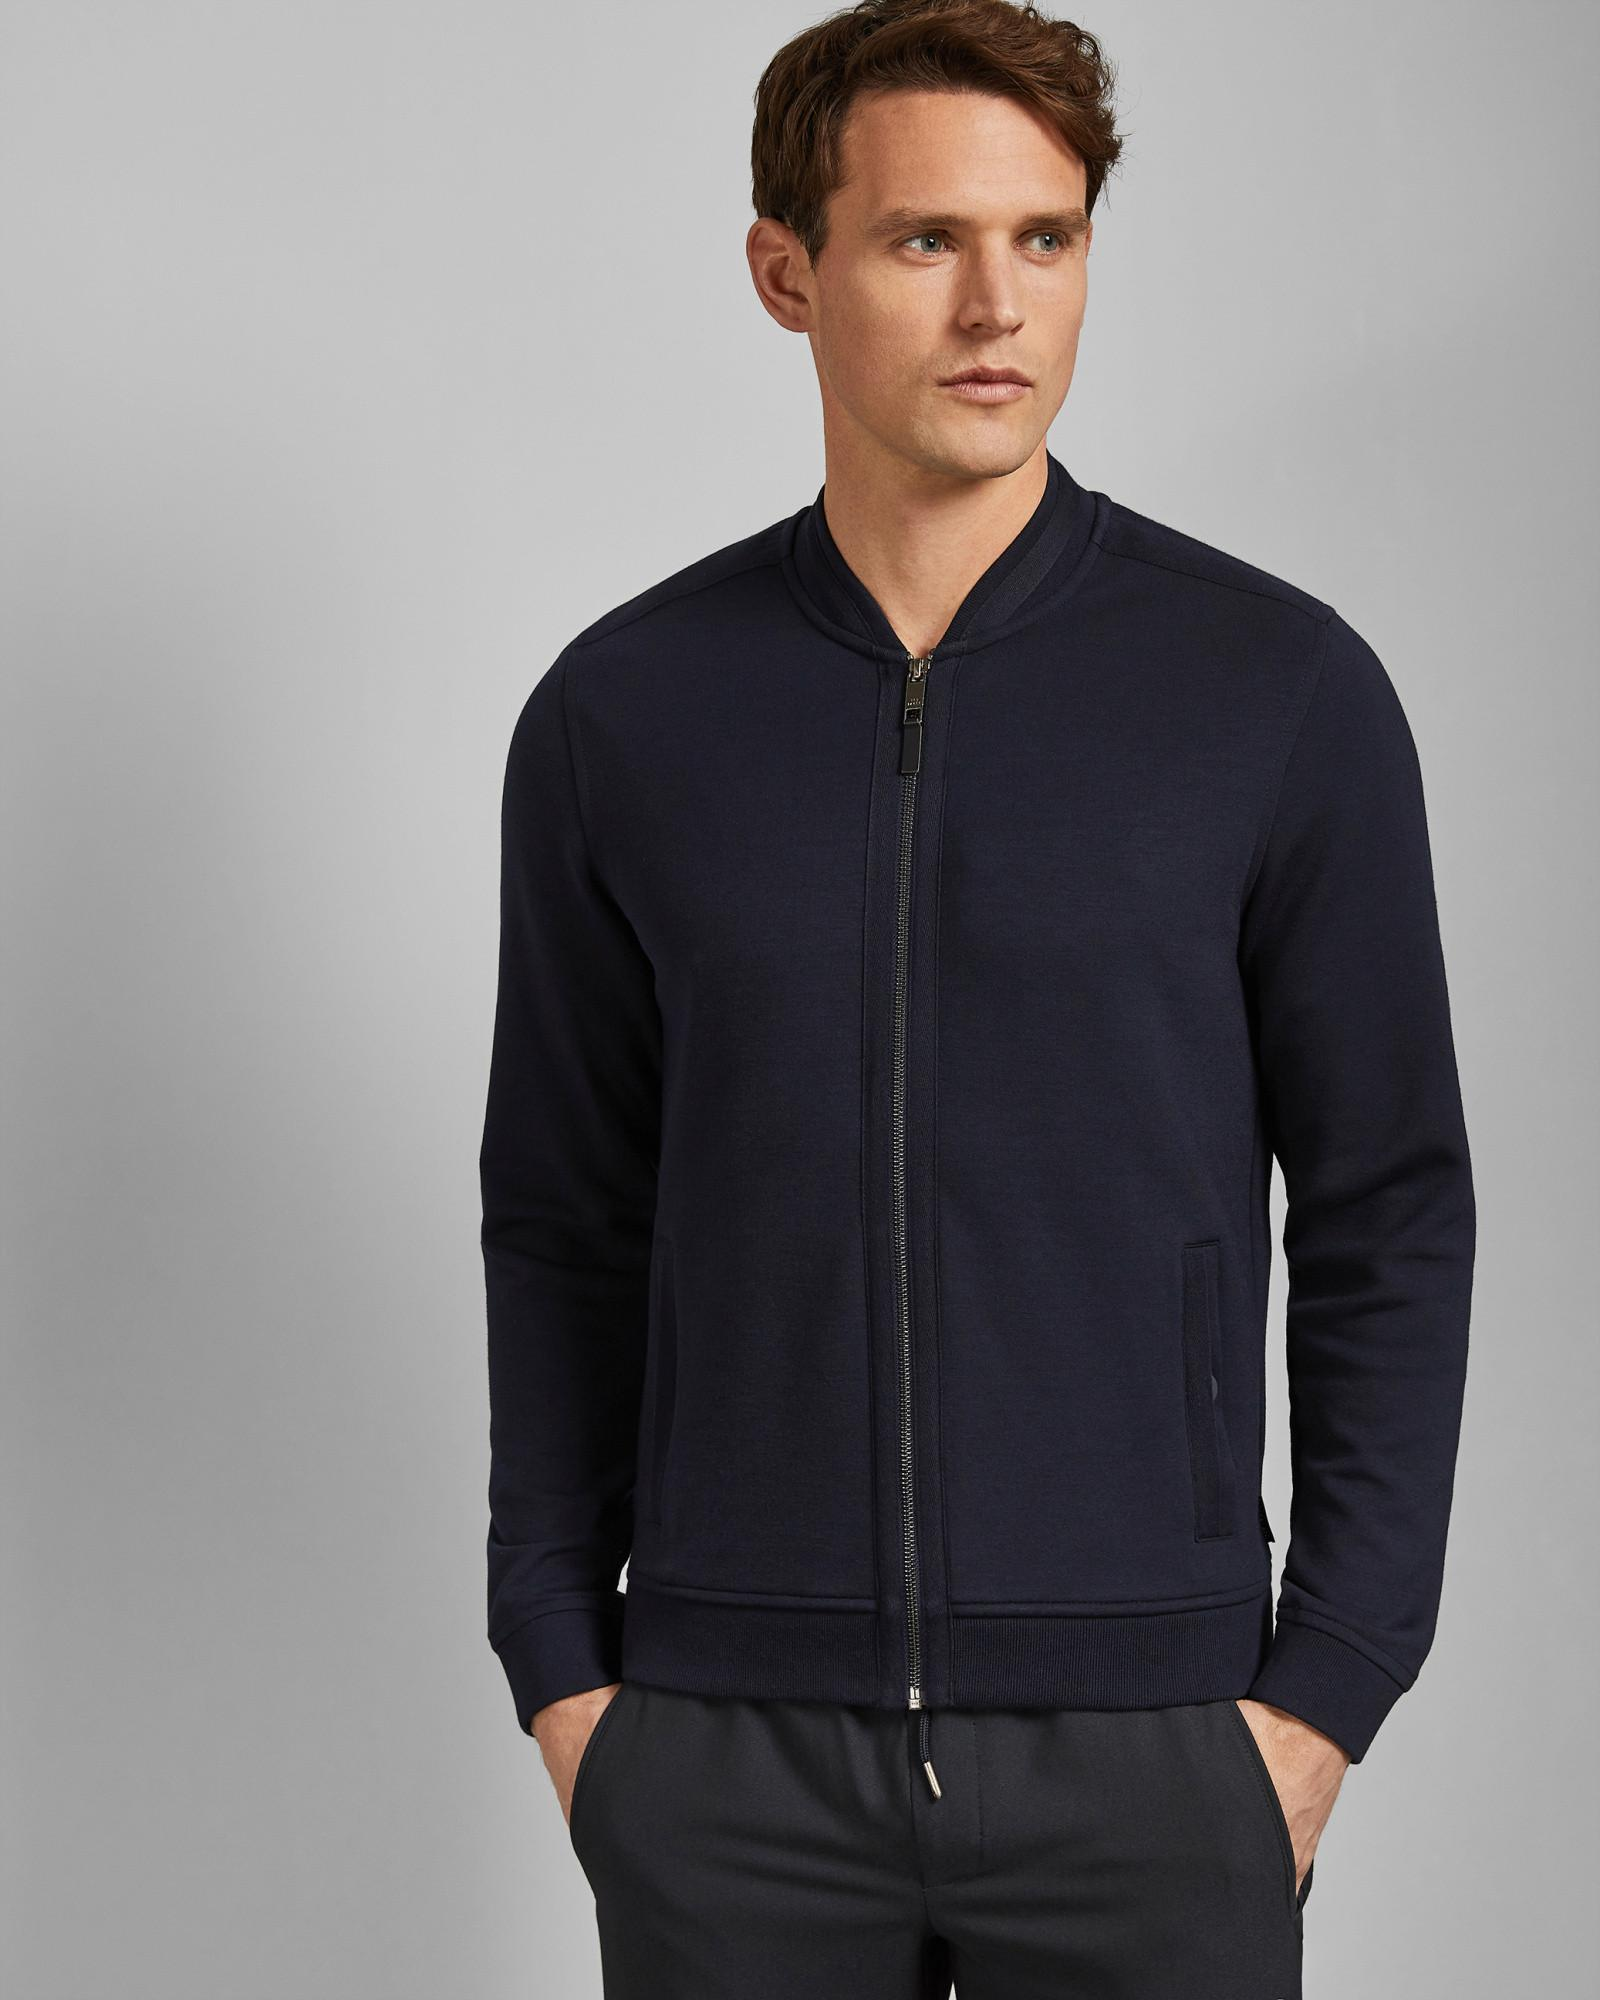 d232f6a1f0f702 Lyst - Ted Baker Bomber Jacket With Woven Panels in Blue for Men